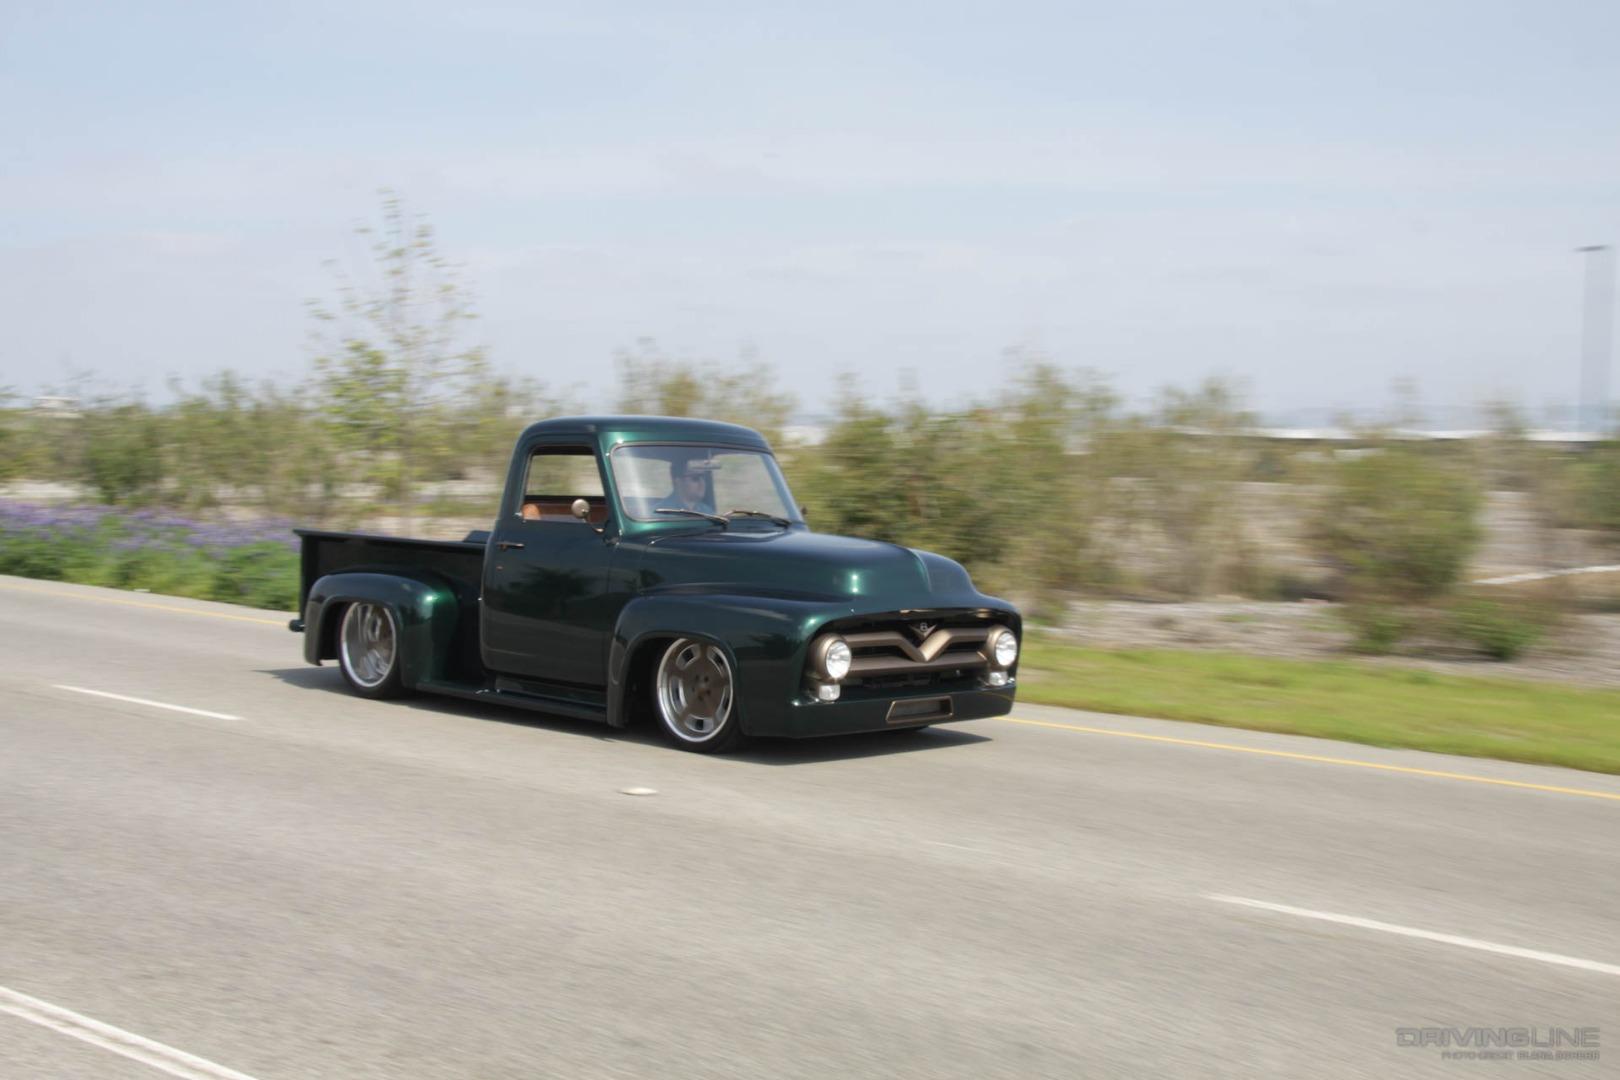 Chasing The Blues Away With A Green Machine Drivingline 1955 Ford F100 Pick Up St Louis Preview Image 1953 0017